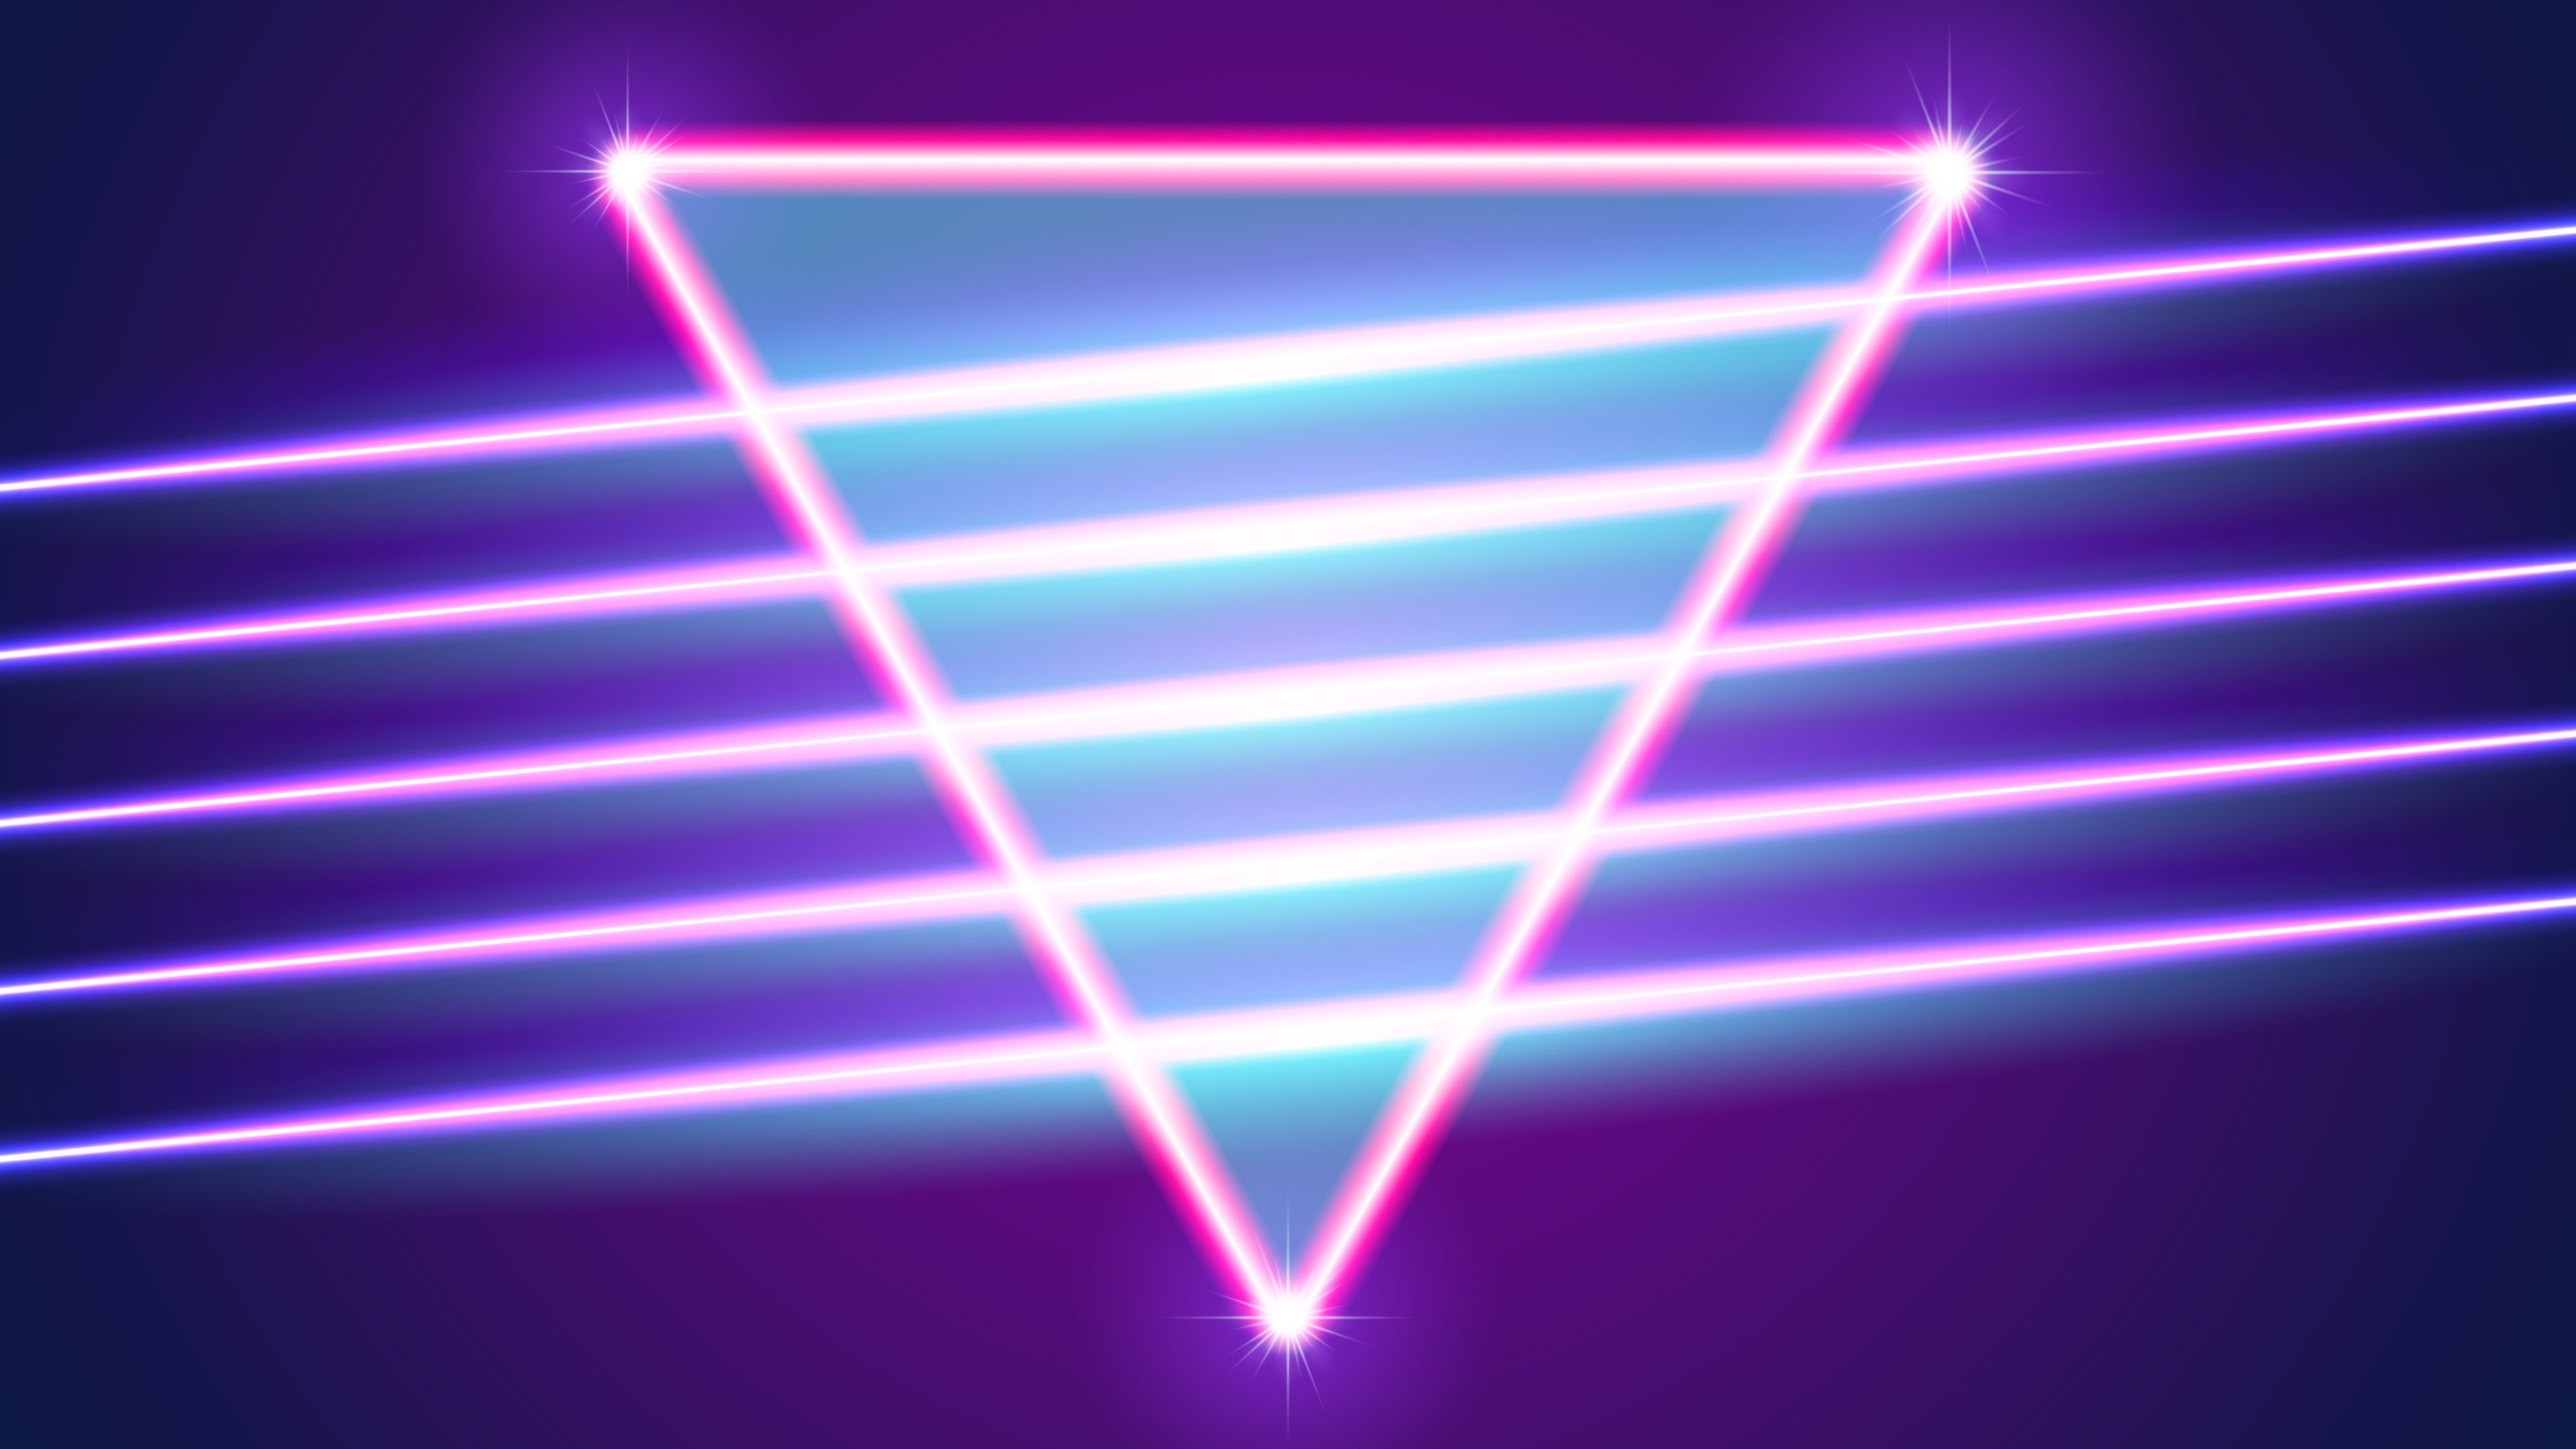 Wallpaper Neon Triangle Abstract Light 3840x2160 Uhd 4k